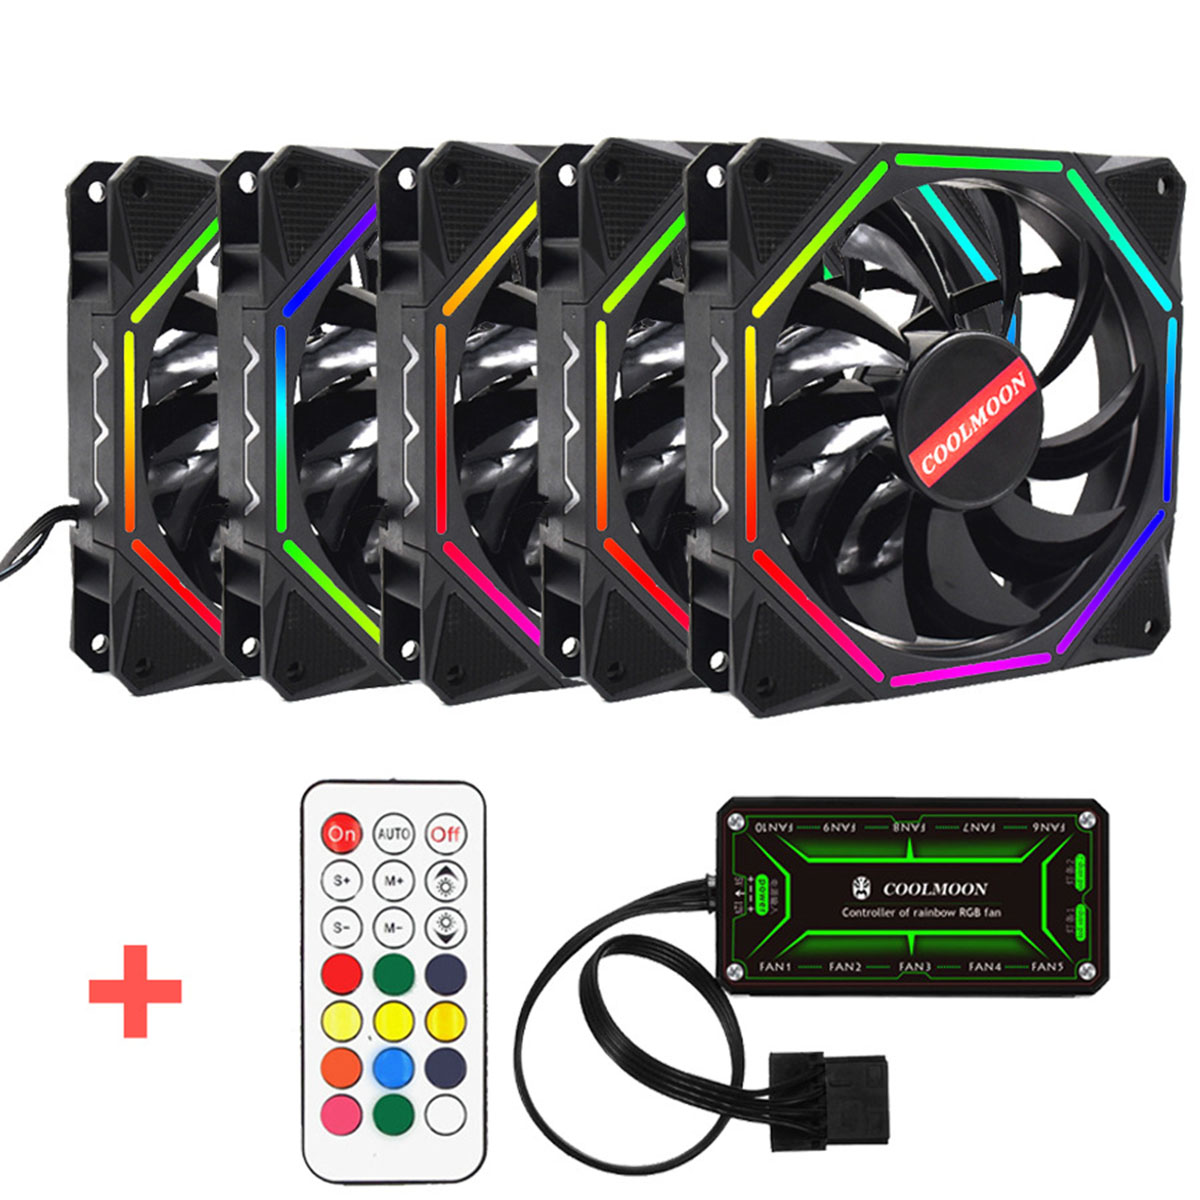 S Skyee Computer Case Pc Cooling Fan Rgb Adjustable Led